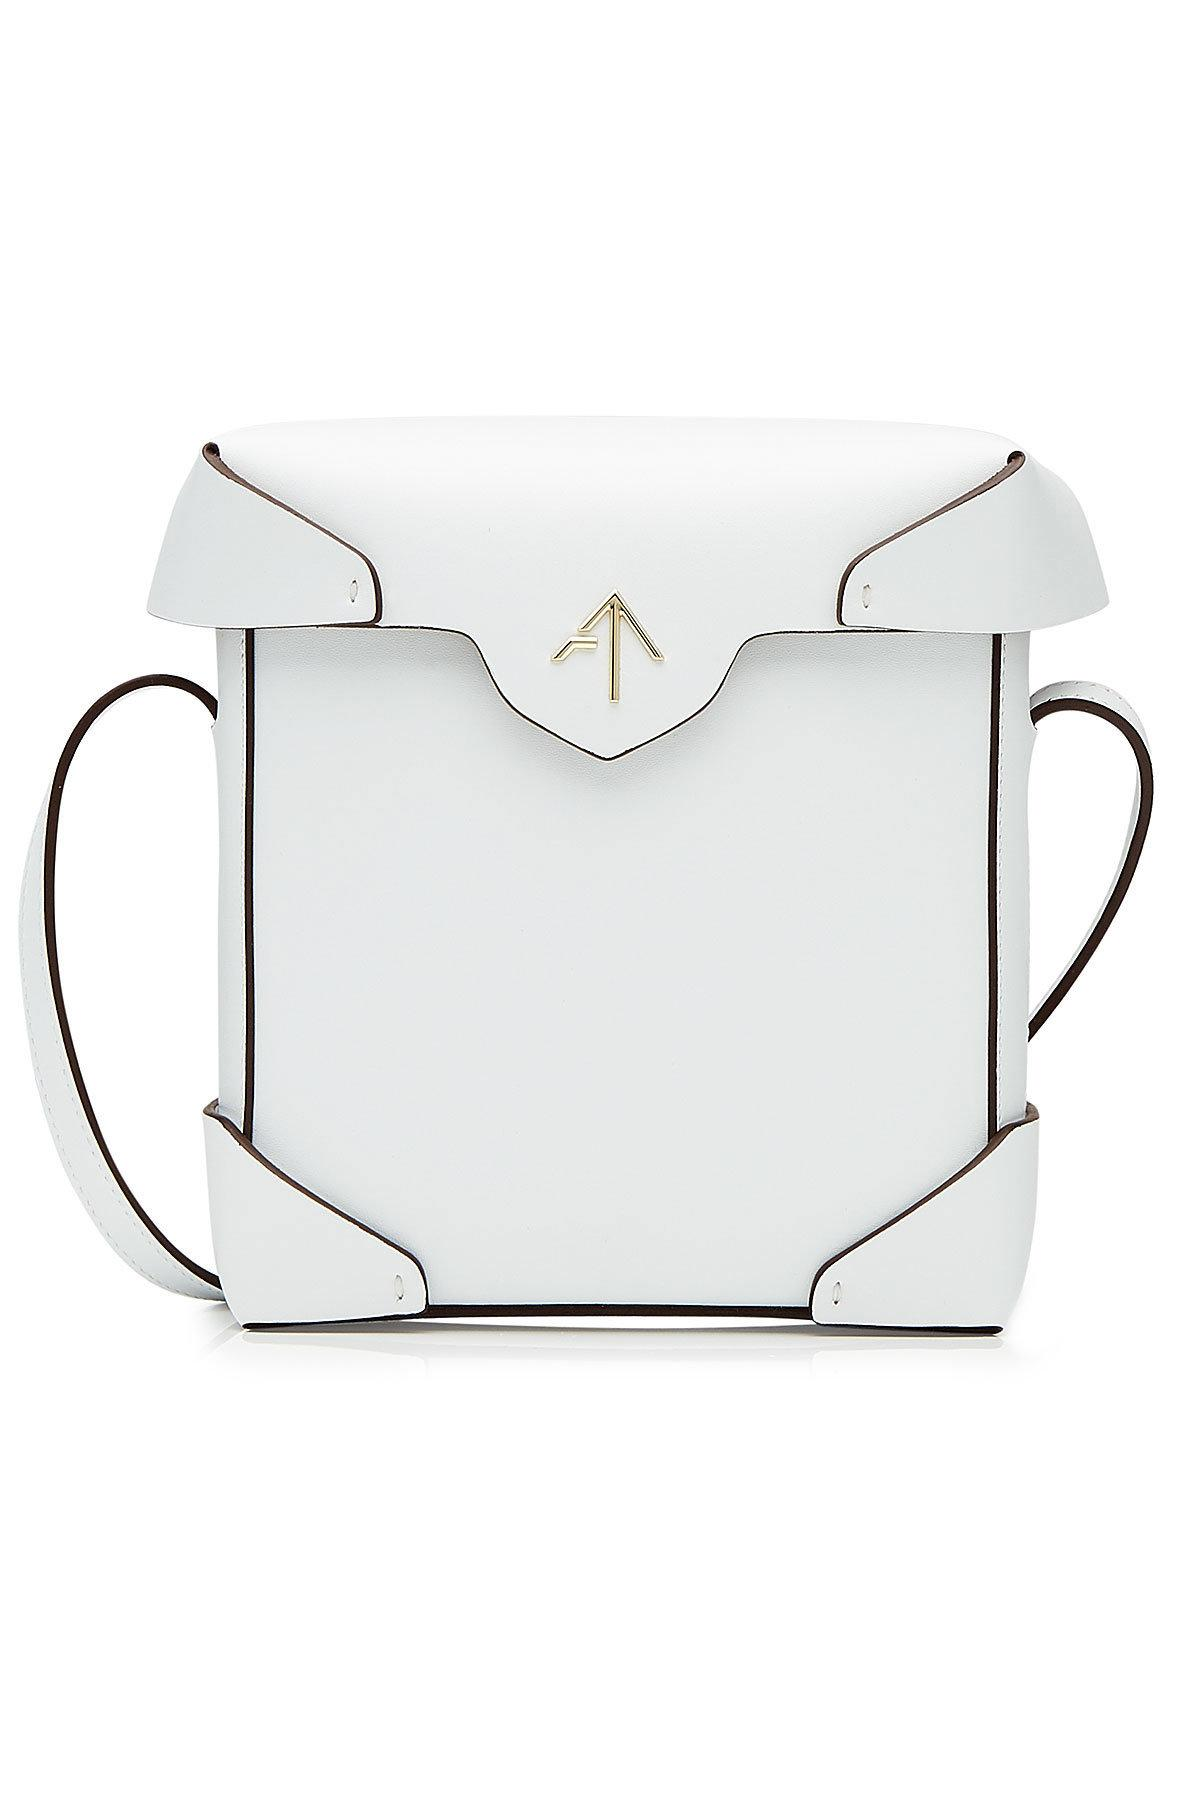 Manu Atelier Mini Pristine Leather Shoulder Bag In White